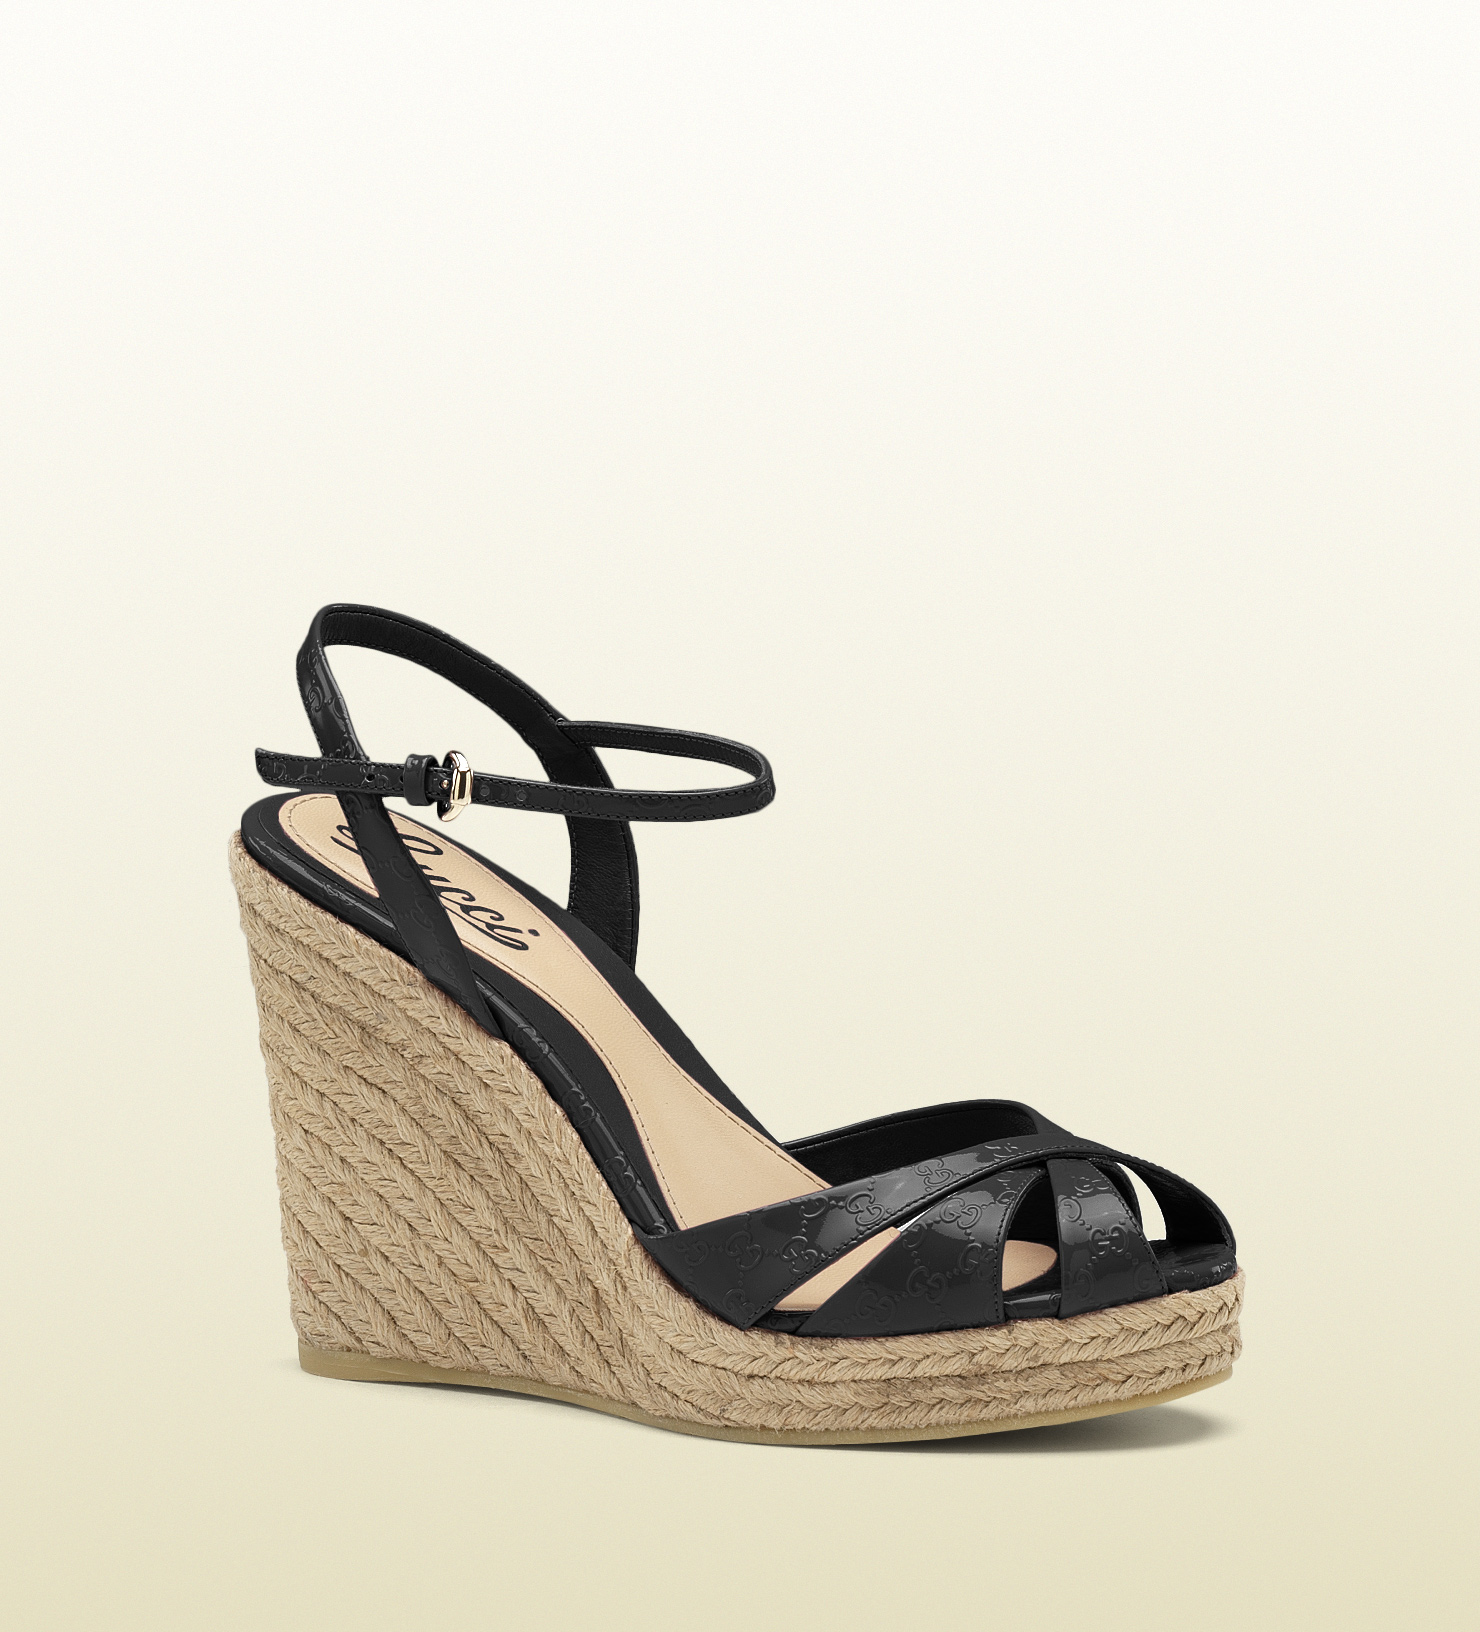 Lyst - Gucci Penelope Strappy Espadrille Wedge Sandal in Black